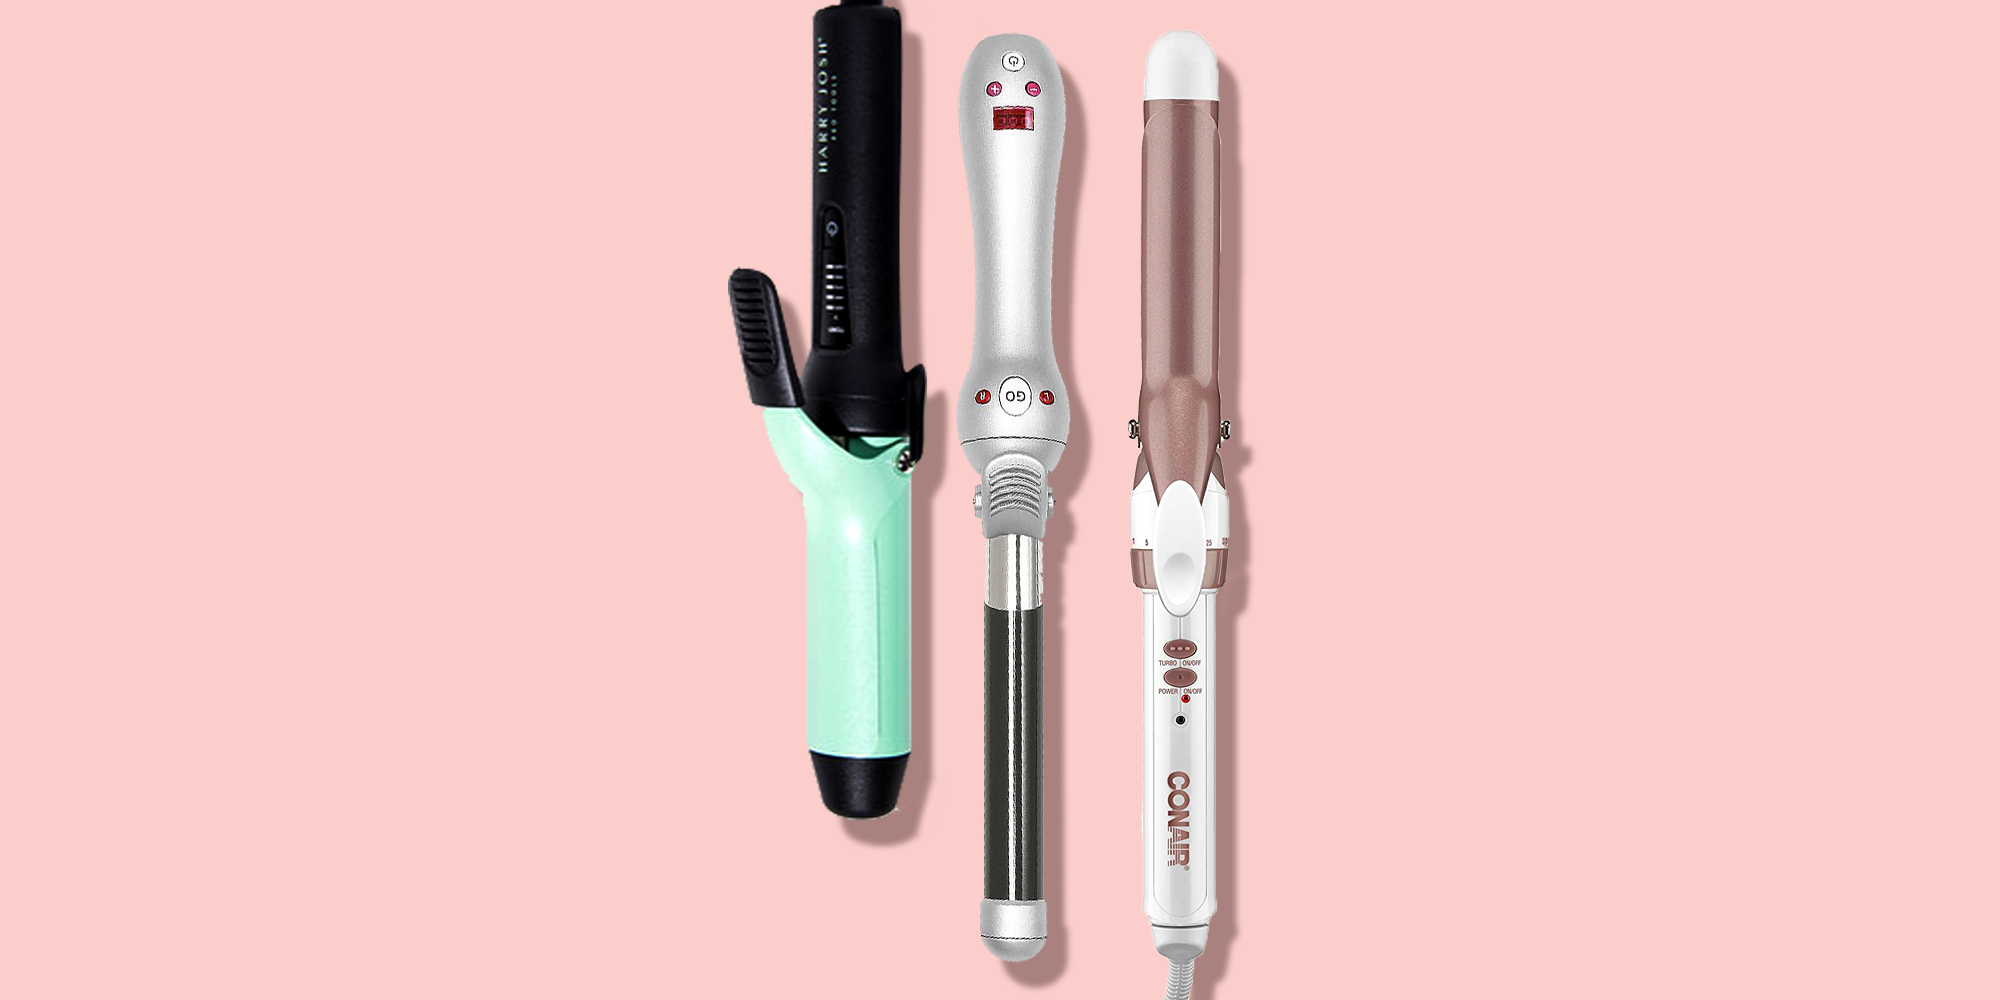 14 Best Curling Irons Of 2021 Reviews Of Top Curling Irons